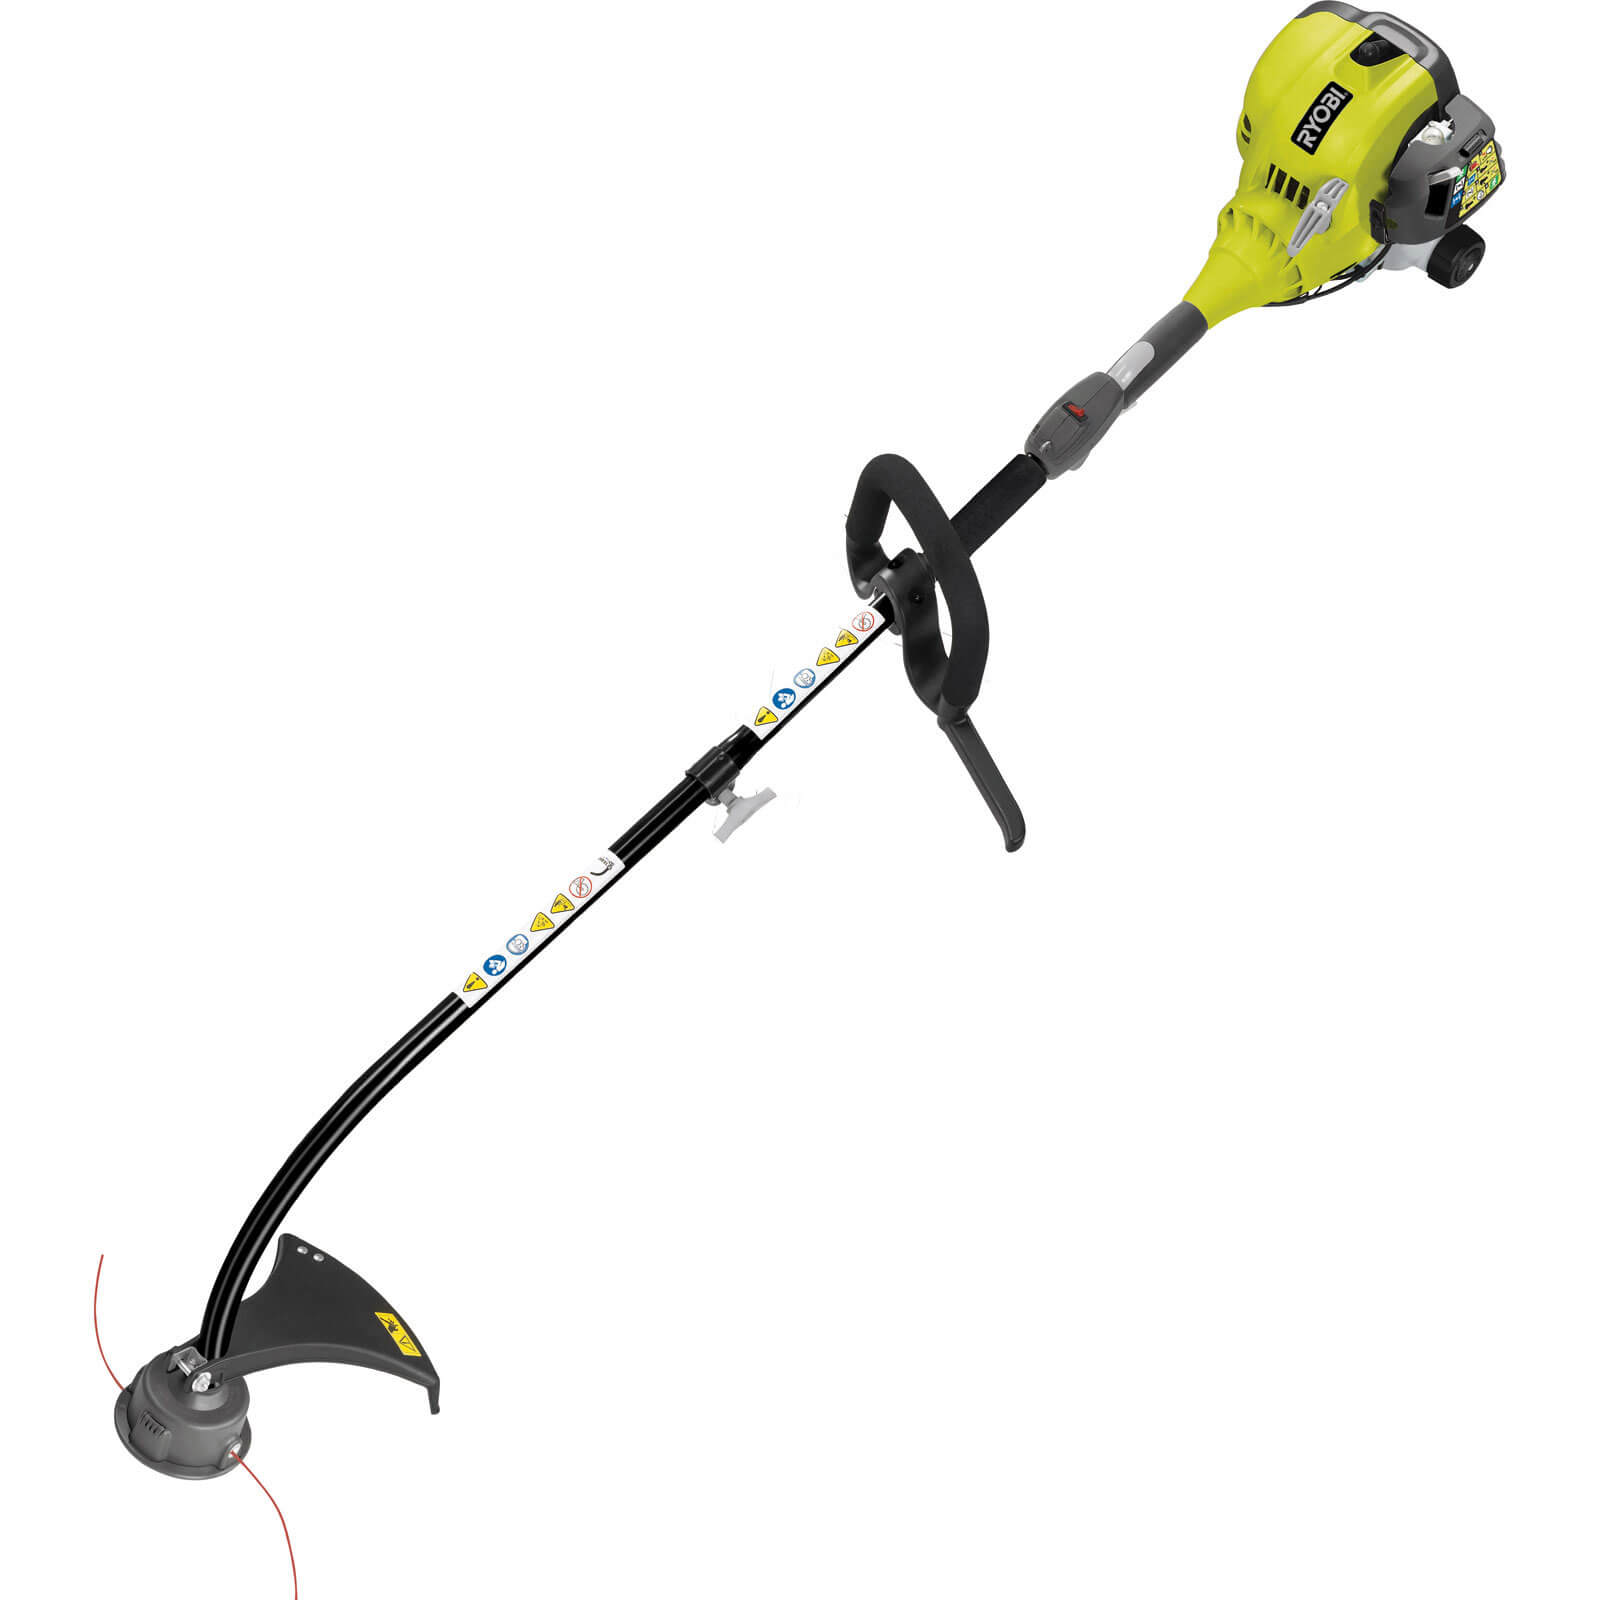 Ryobi Rlt30cesa Petrol Grass Trimmer 430mm Cut Width With 30cc Start Easy 2 Stroke Engine Is Expandit Compatible